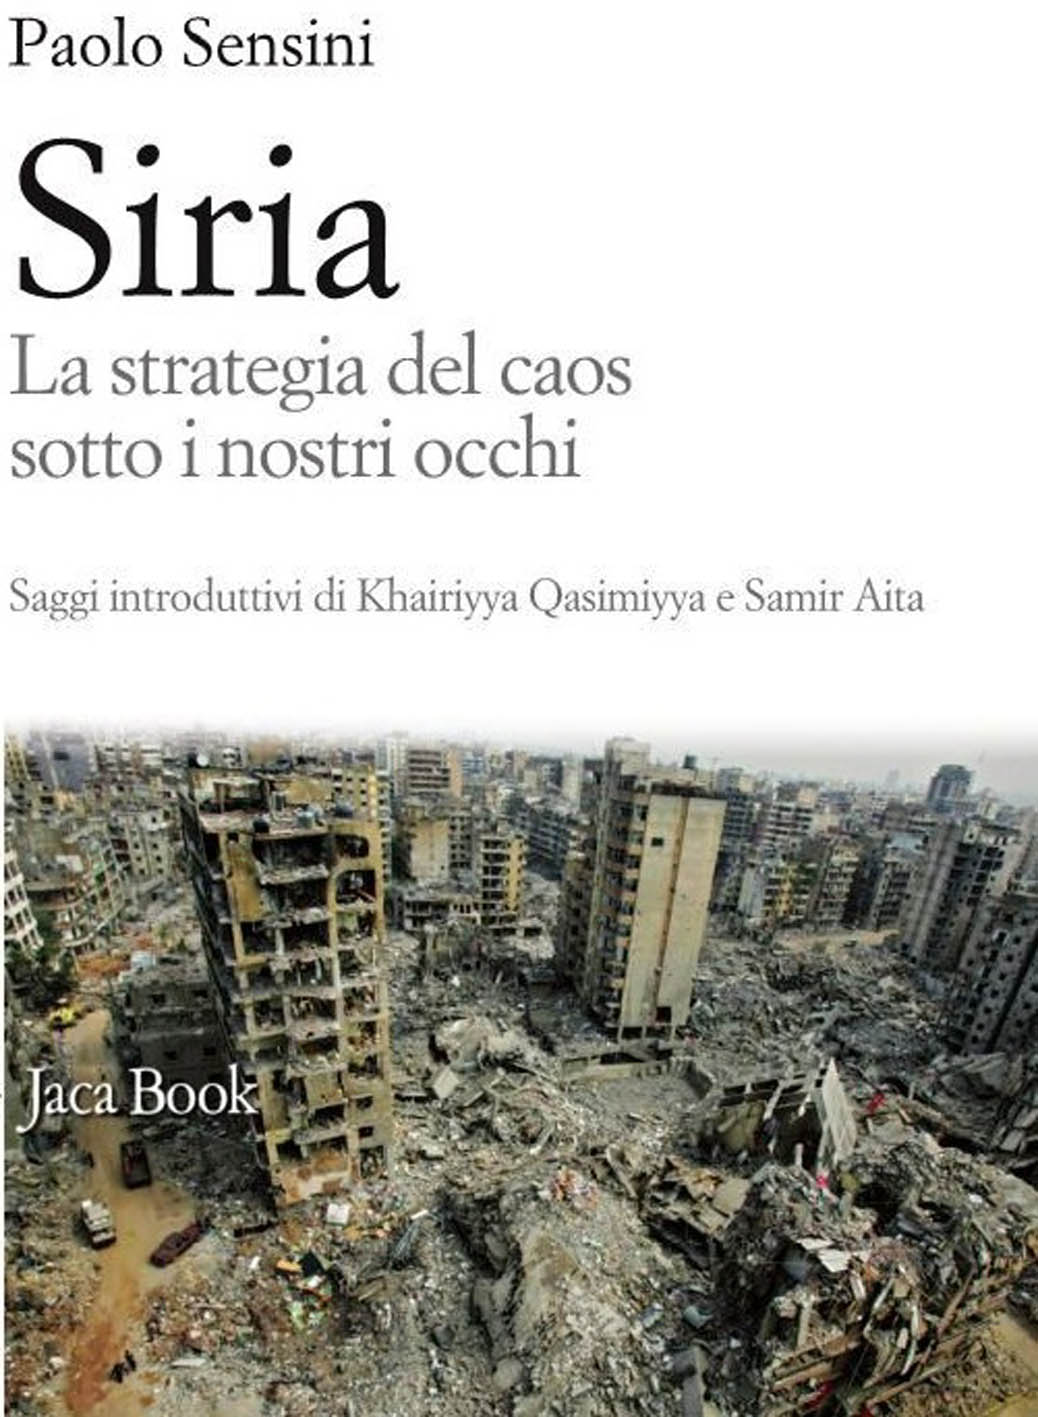 Siria-strategia-del-caos